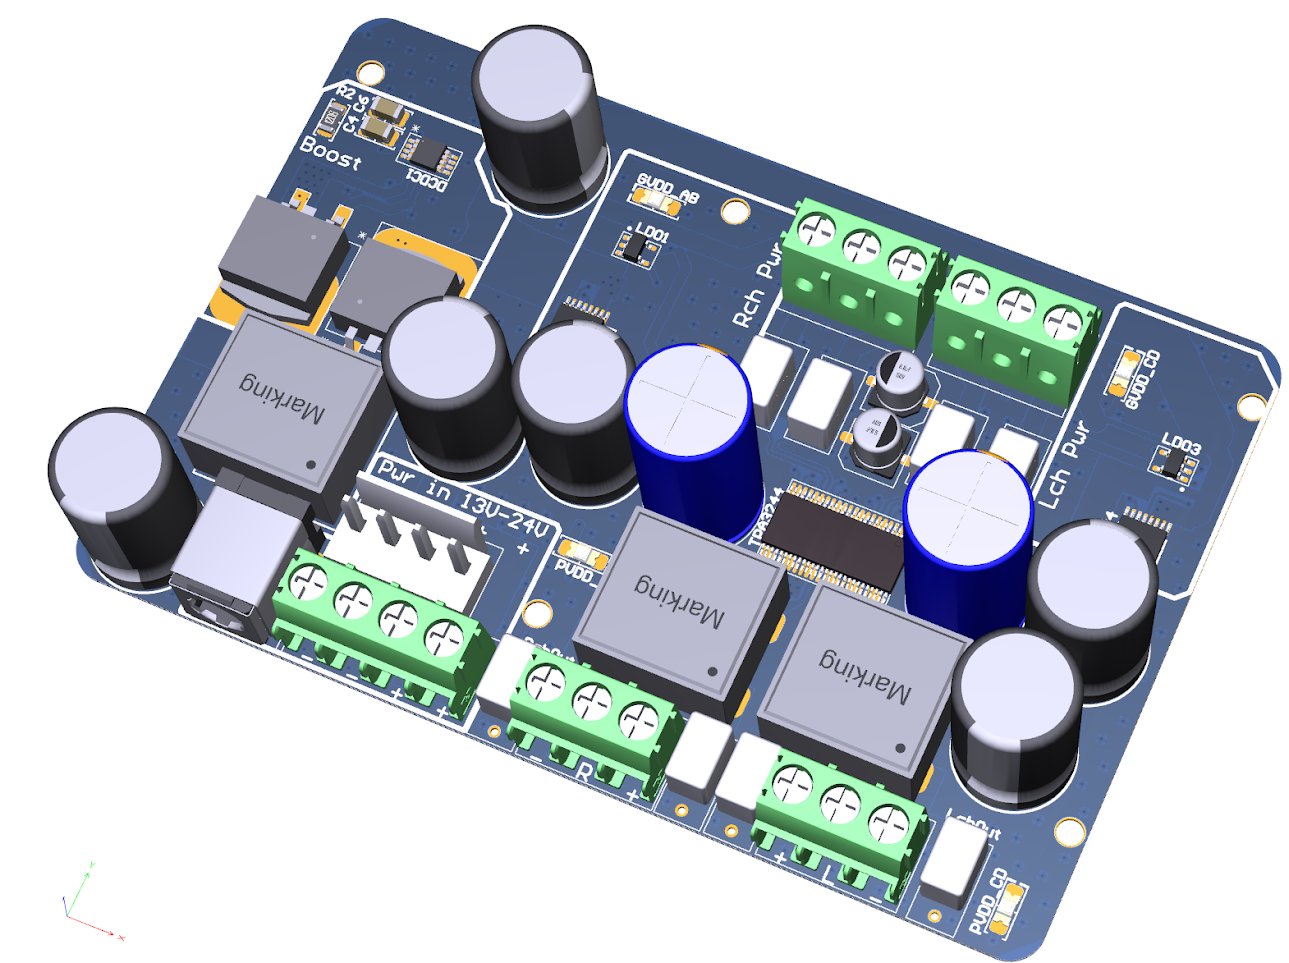 Diy Tpa3244 Board Diyaudio Pcb For Amplifier Audio Power Circuit Quotes Click The Image To Open In Full Size